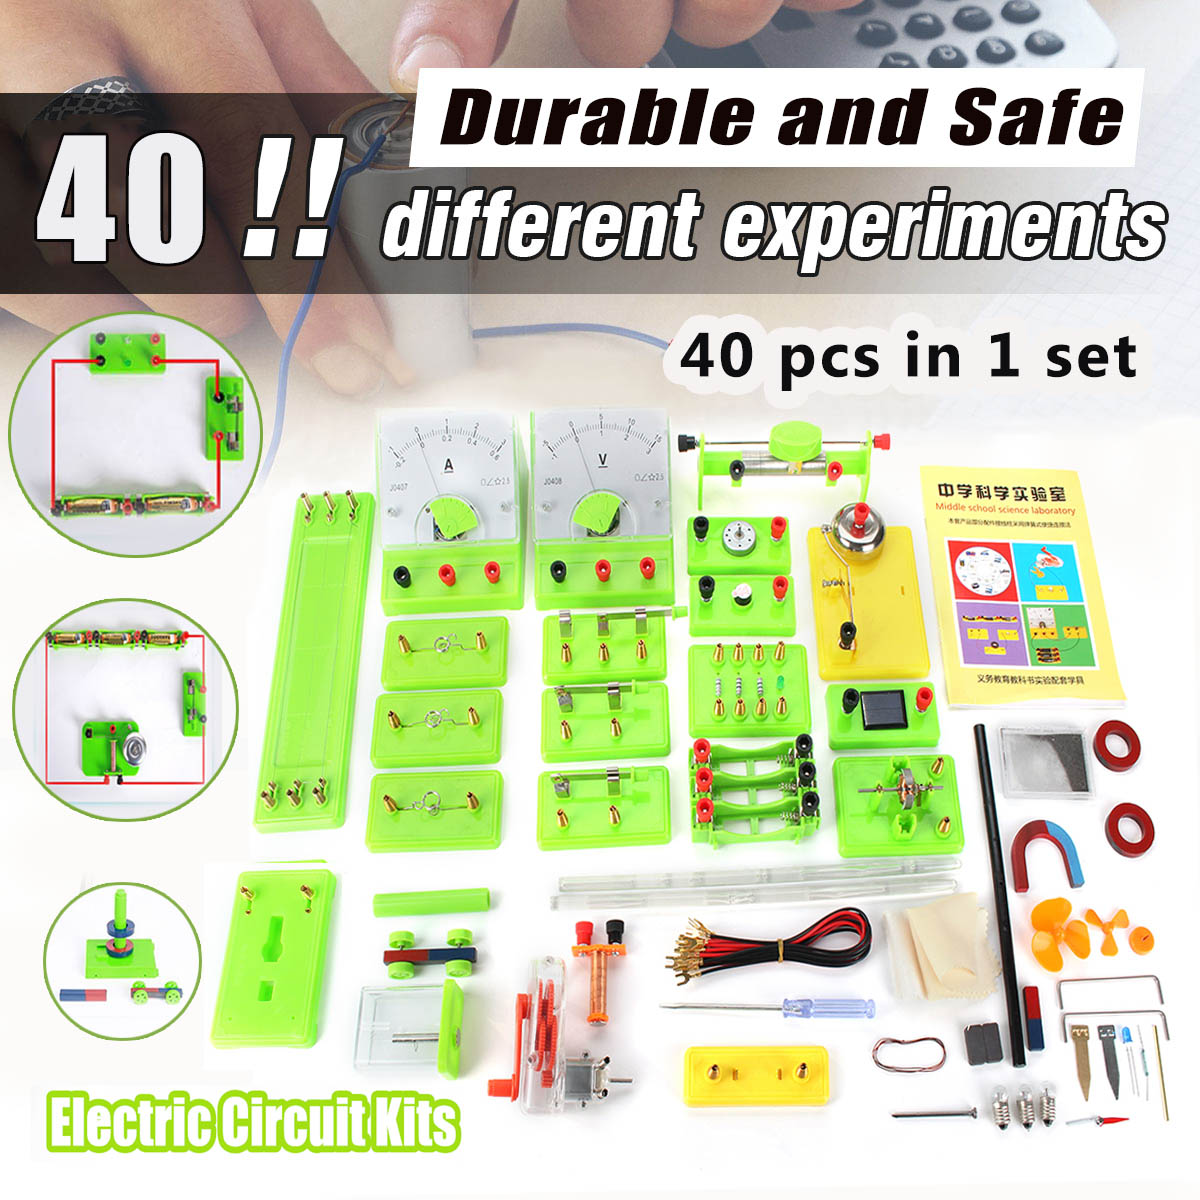 40pcs/set DIY Physics Experiments Electricity Learn Test Electromagnetic Physics Equipment Getting Started for Student Children40pcs/set DIY Physics Experiments Electricity Learn Test Electromagnetic Physics Equipment Getting Started for Student Children